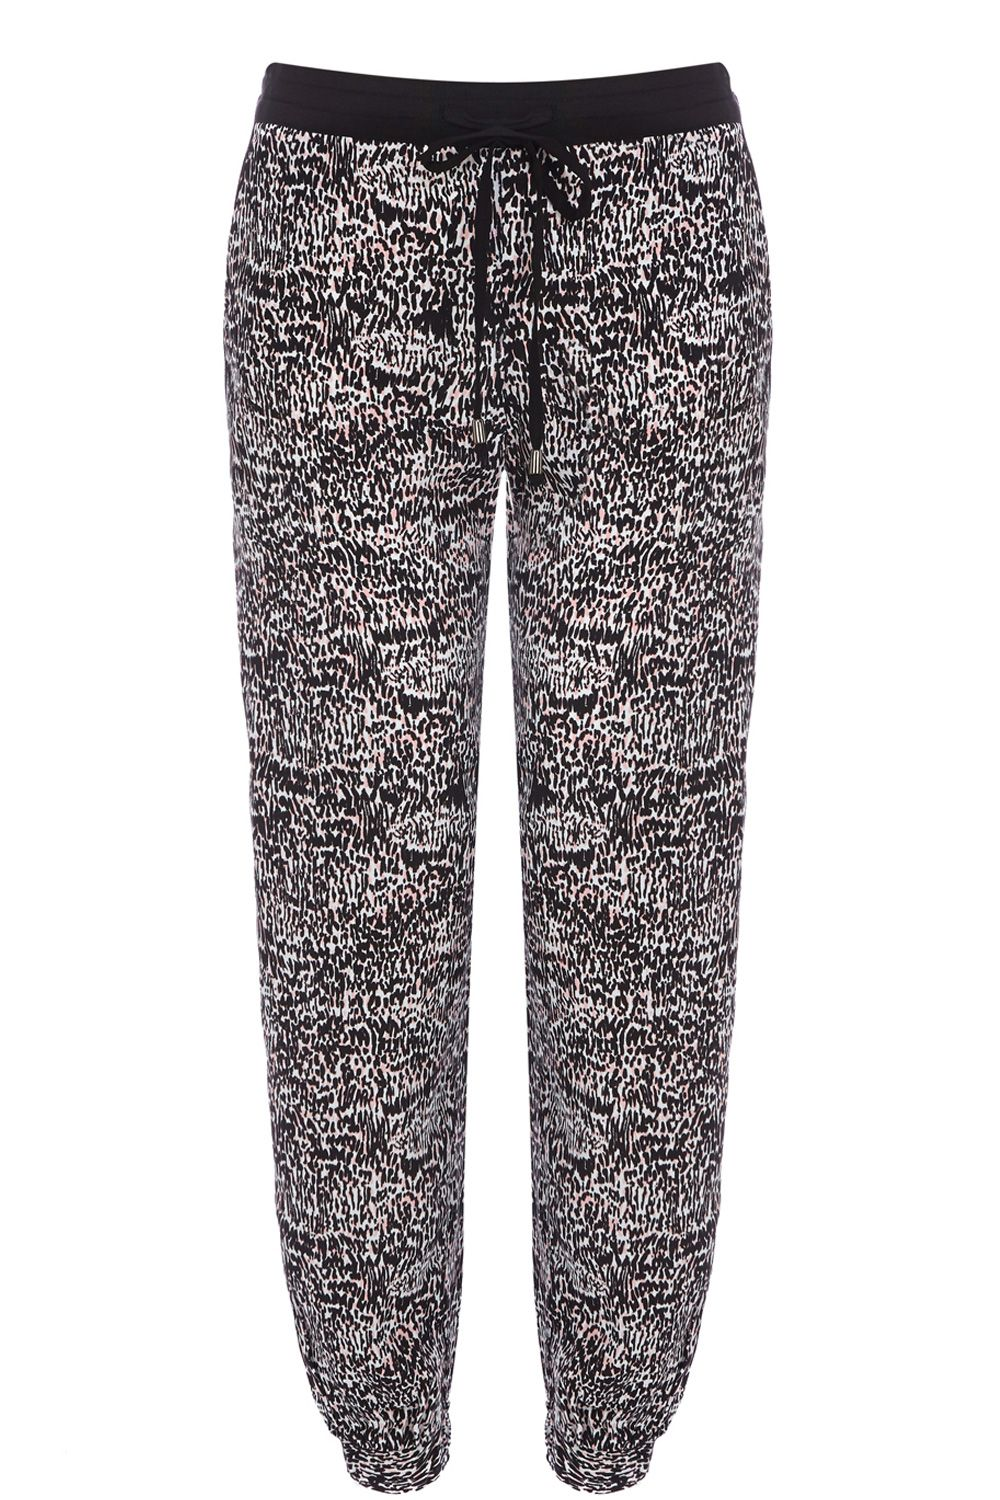 Animal print patched trousers